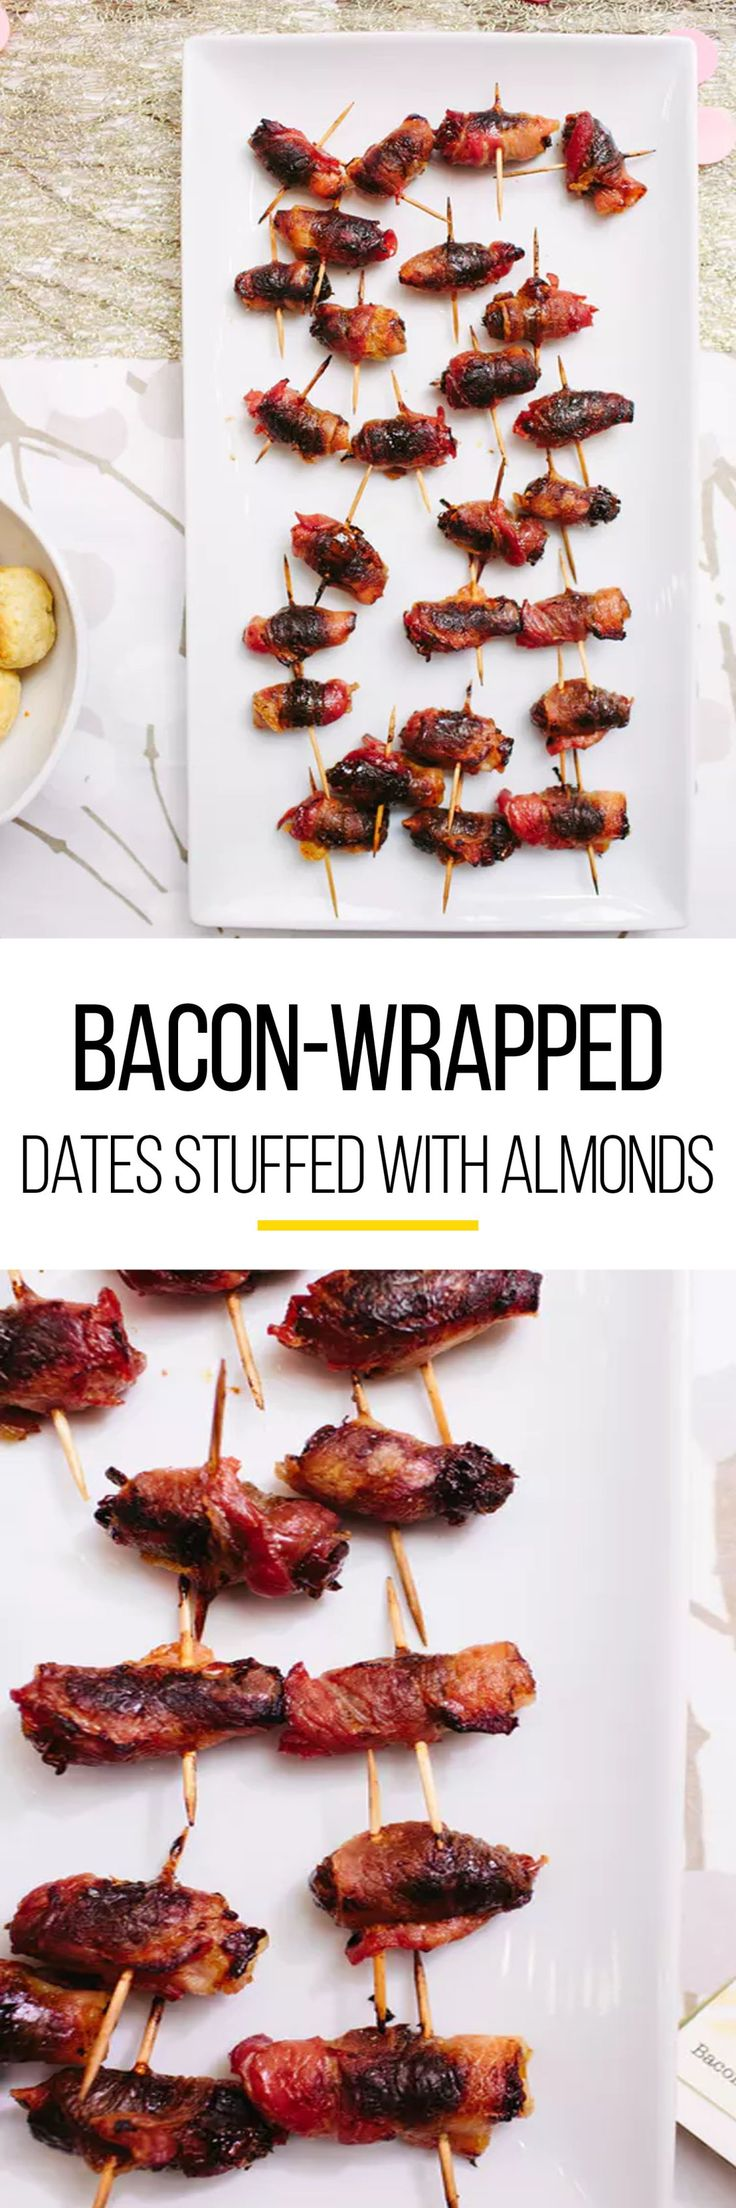 Bacon wrapped in anything is pretty much a natural crowd pleaser at a holiday party. During your Christmas or Thanksgiving celebrations make these bacon-wrapped dates stuffed with almonds. To make this easy party food, you'll need Marcona almonds, dried, pitted dates, and  thick-cut bacon. 3 ingredients is sometimes all it takes to make a great party appetizer.